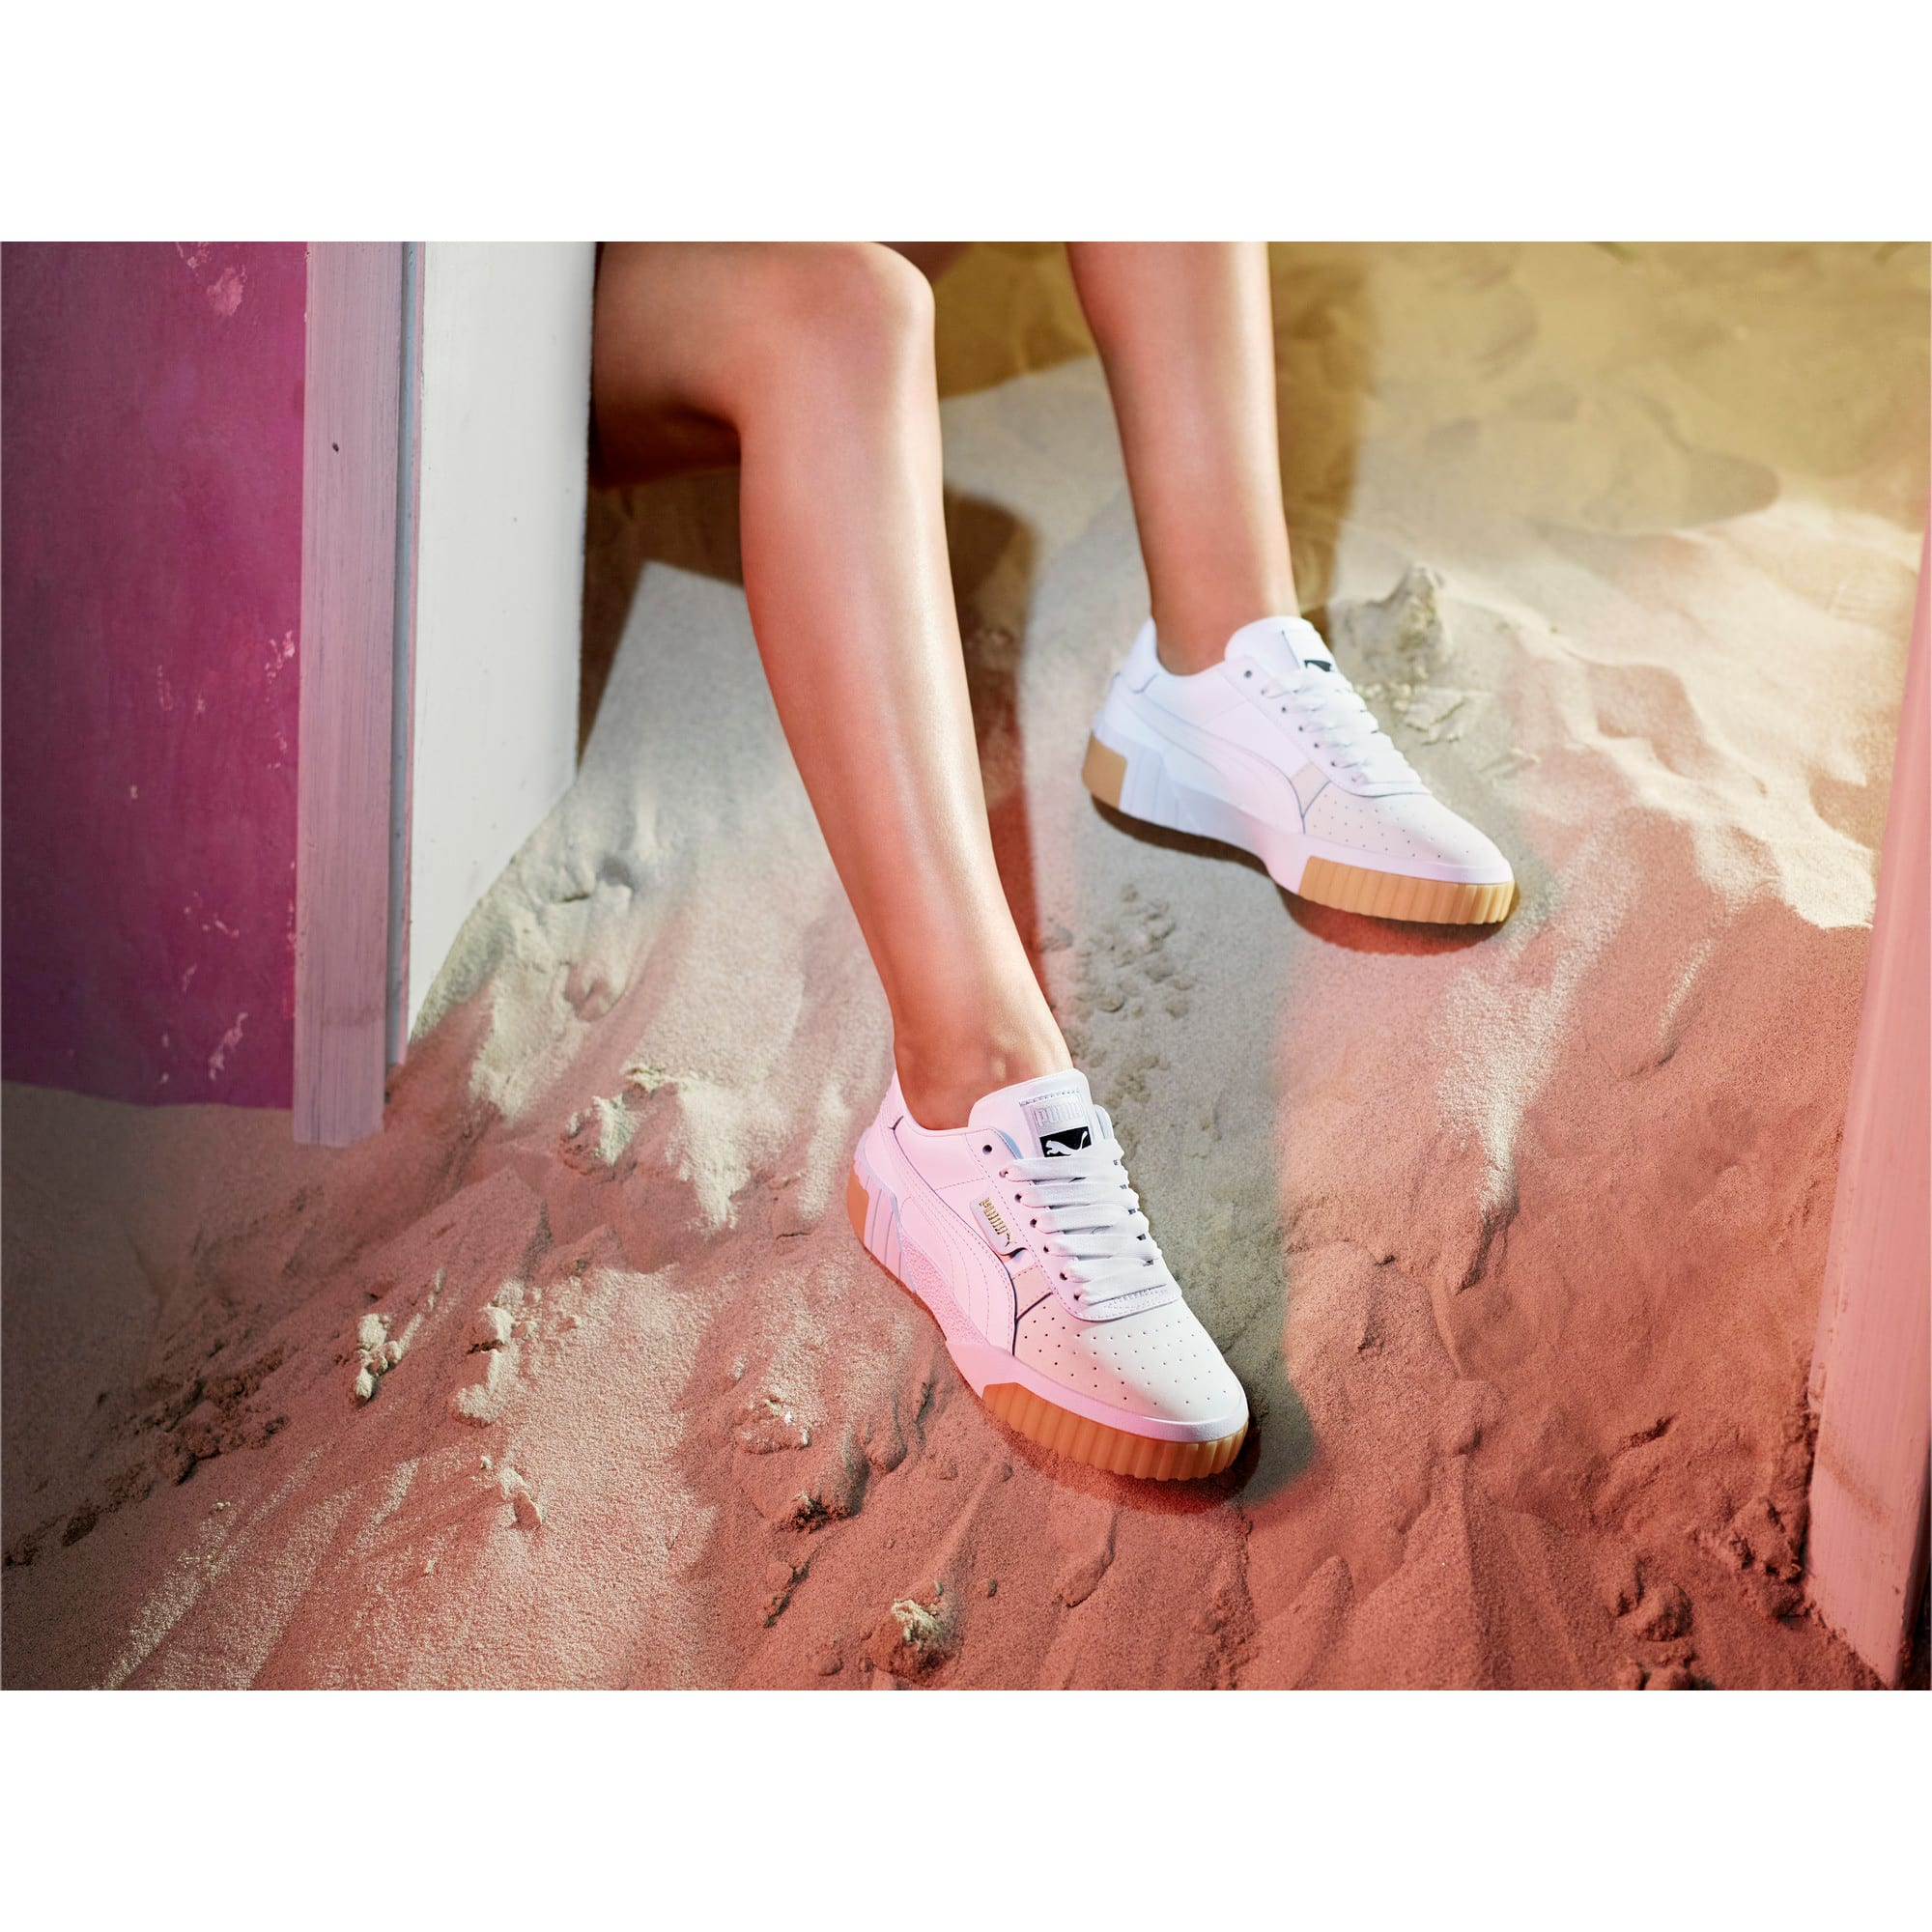 Thumbnail 7 of Zapatillas de mujer Cali Exotic, Puma White-Puma White, medium